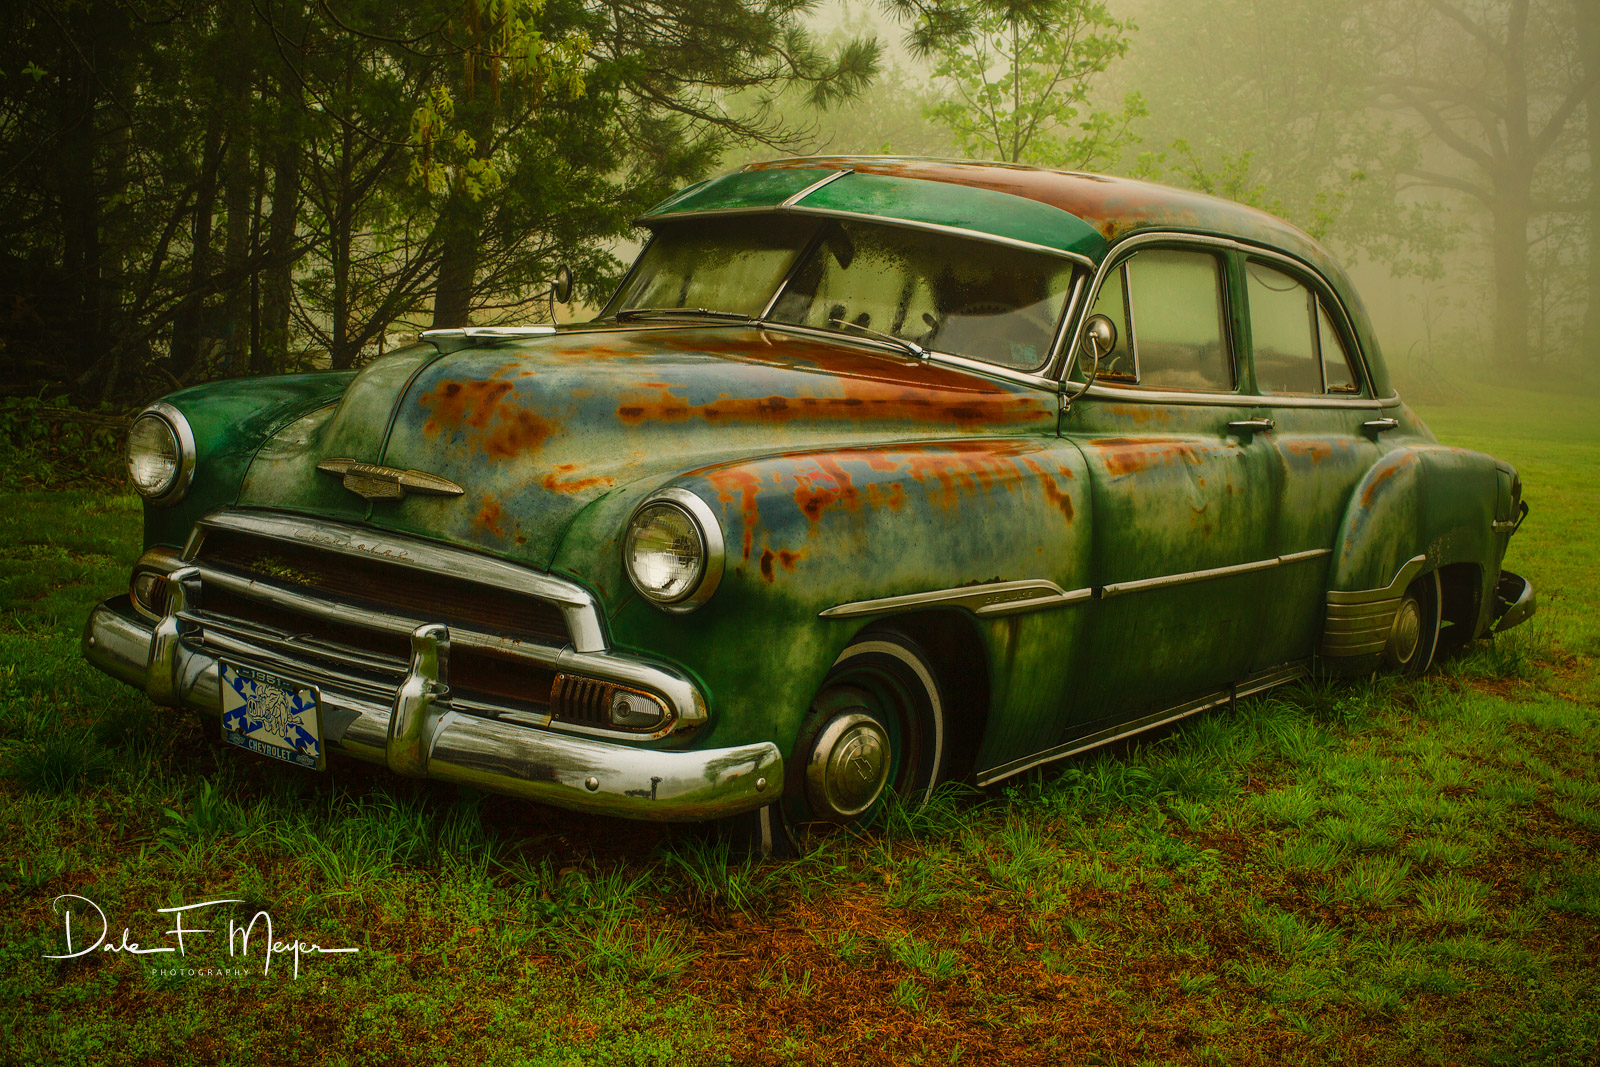 1951 Chevrolet Sedan,fog,old car,rain,time gone by gallerie, photo